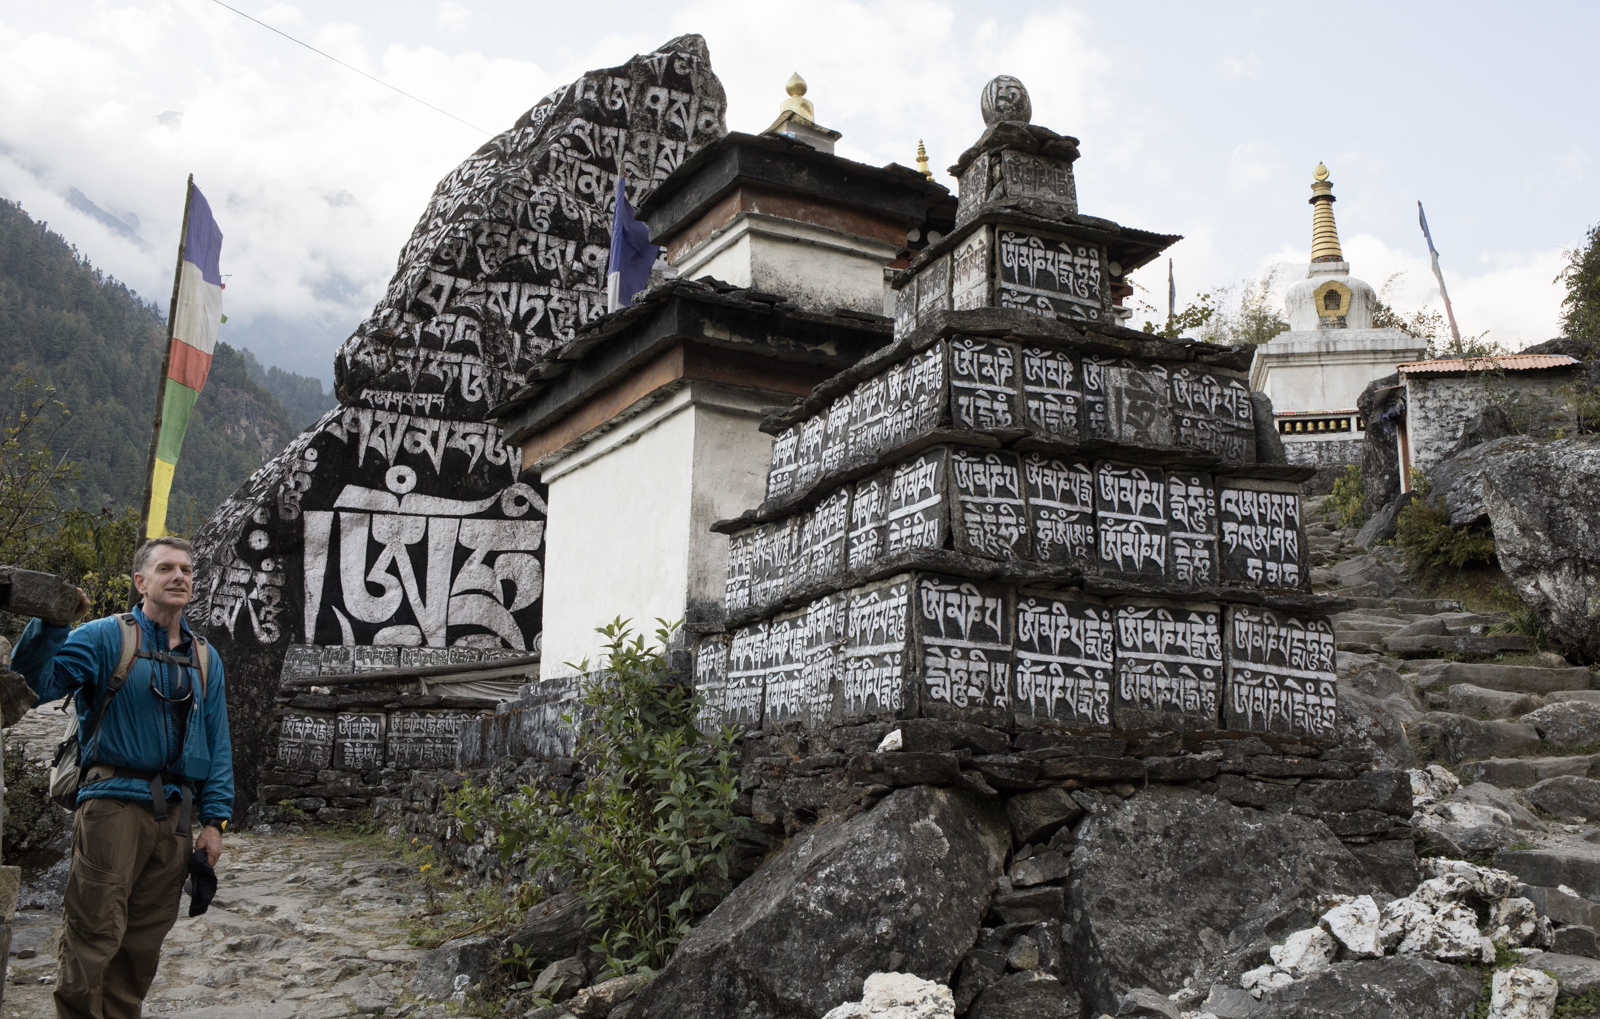 Ambrose waits near the painted Mani stones and Chortens to direct us around the stones clockwise.  We pass the rocks on the left and can repeat the mantra, Om Mani Padme Hum.